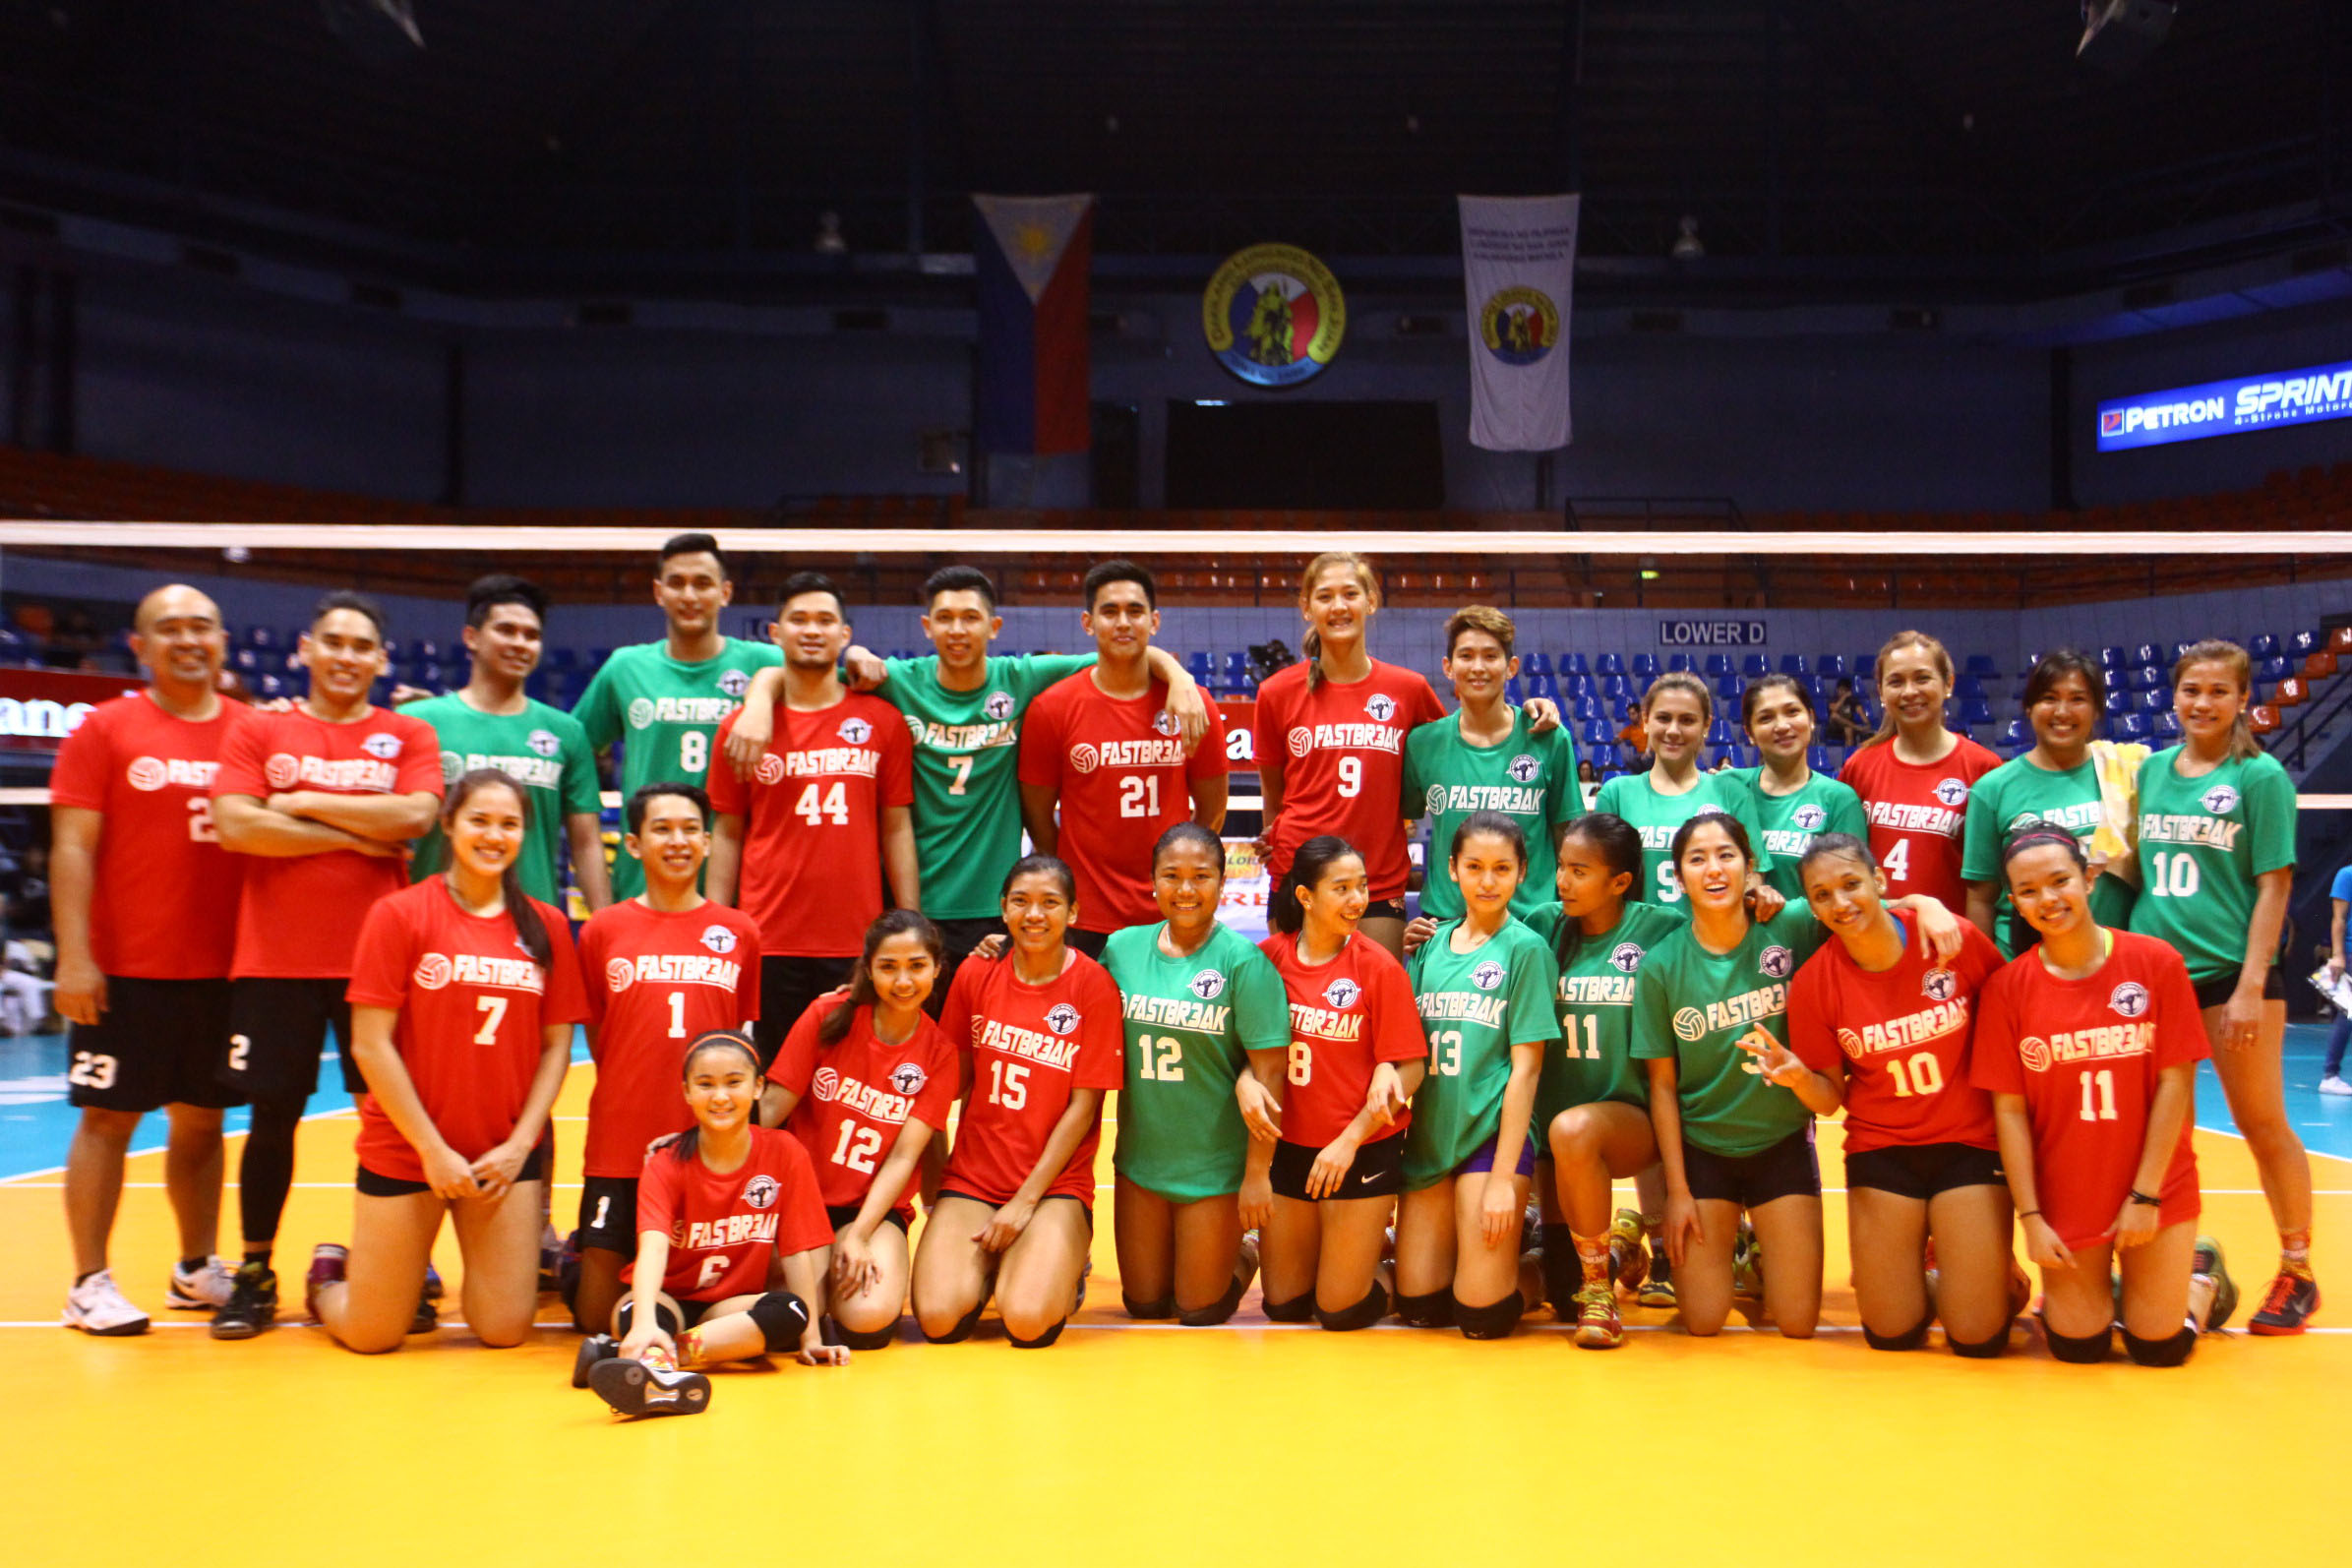 FOR A GOOD CAUSE. Members of both teams pose after the contest. Photo by Josh Albelda/Rappler